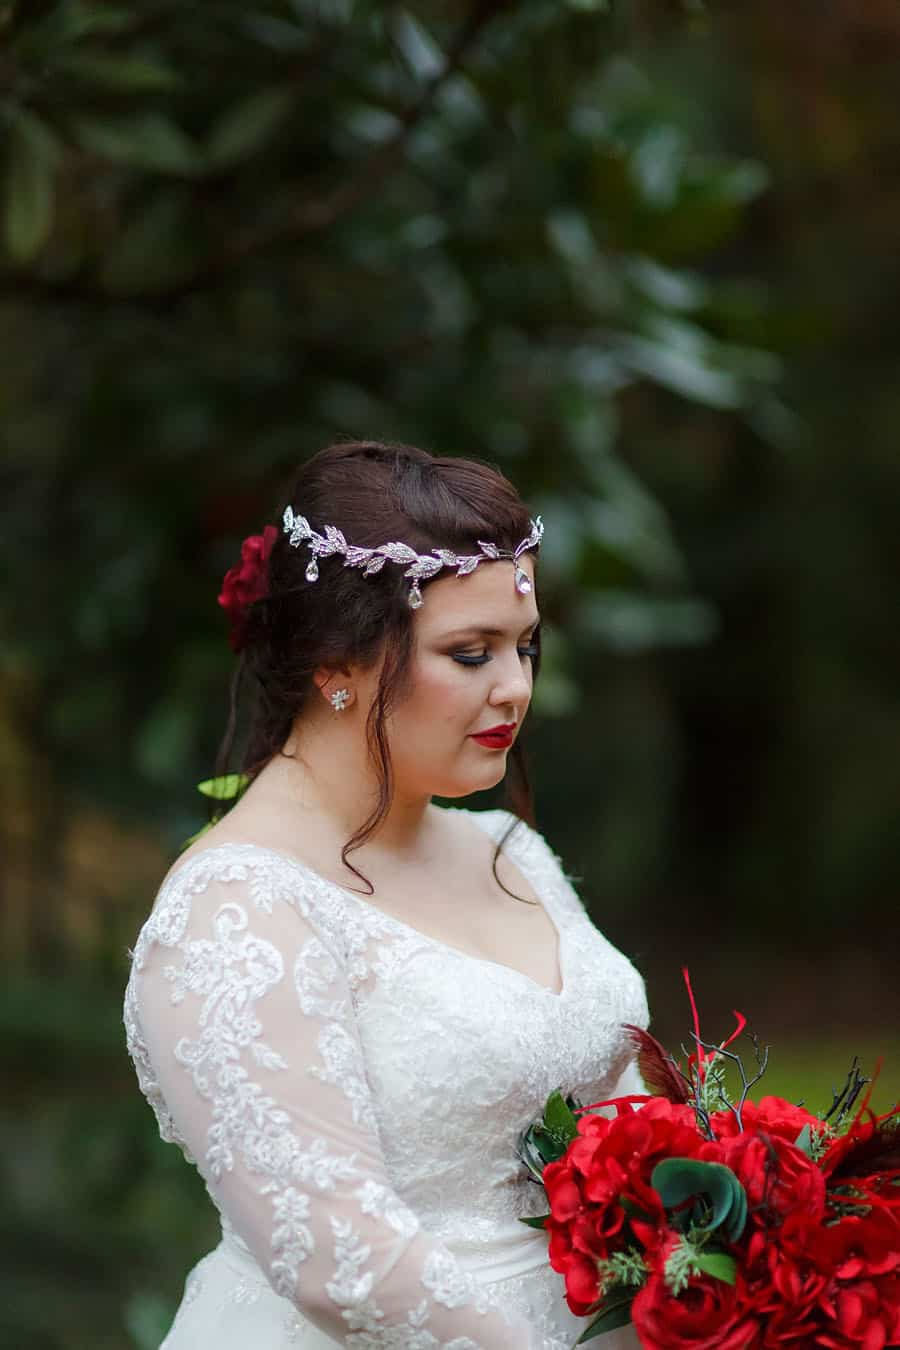 Medieval bride with elegant headpiece